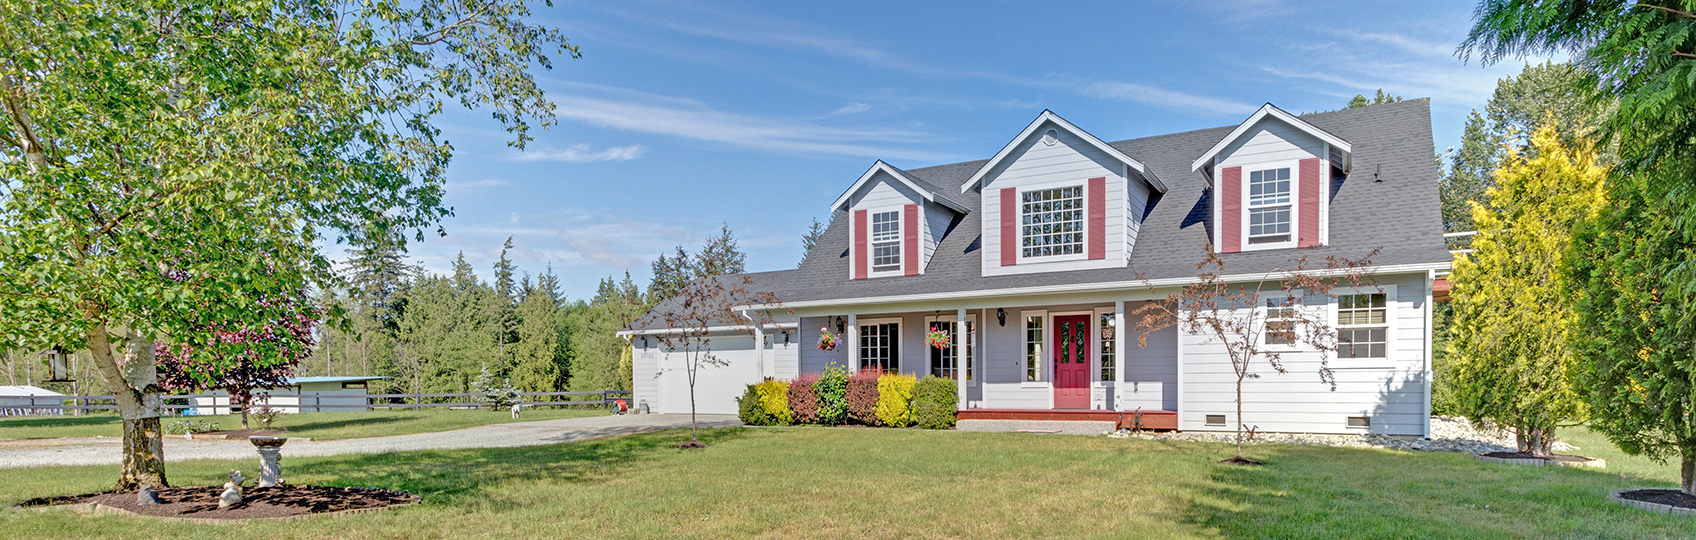 Home with In-Law/Accessory Apartments for Sale Ranch Homes With In Law Apartment Plans on homes with in-law suites, homes with landscaping, homes with apartments attached, 2 bedroom house plans with garage apartments, homes with apartments plans,